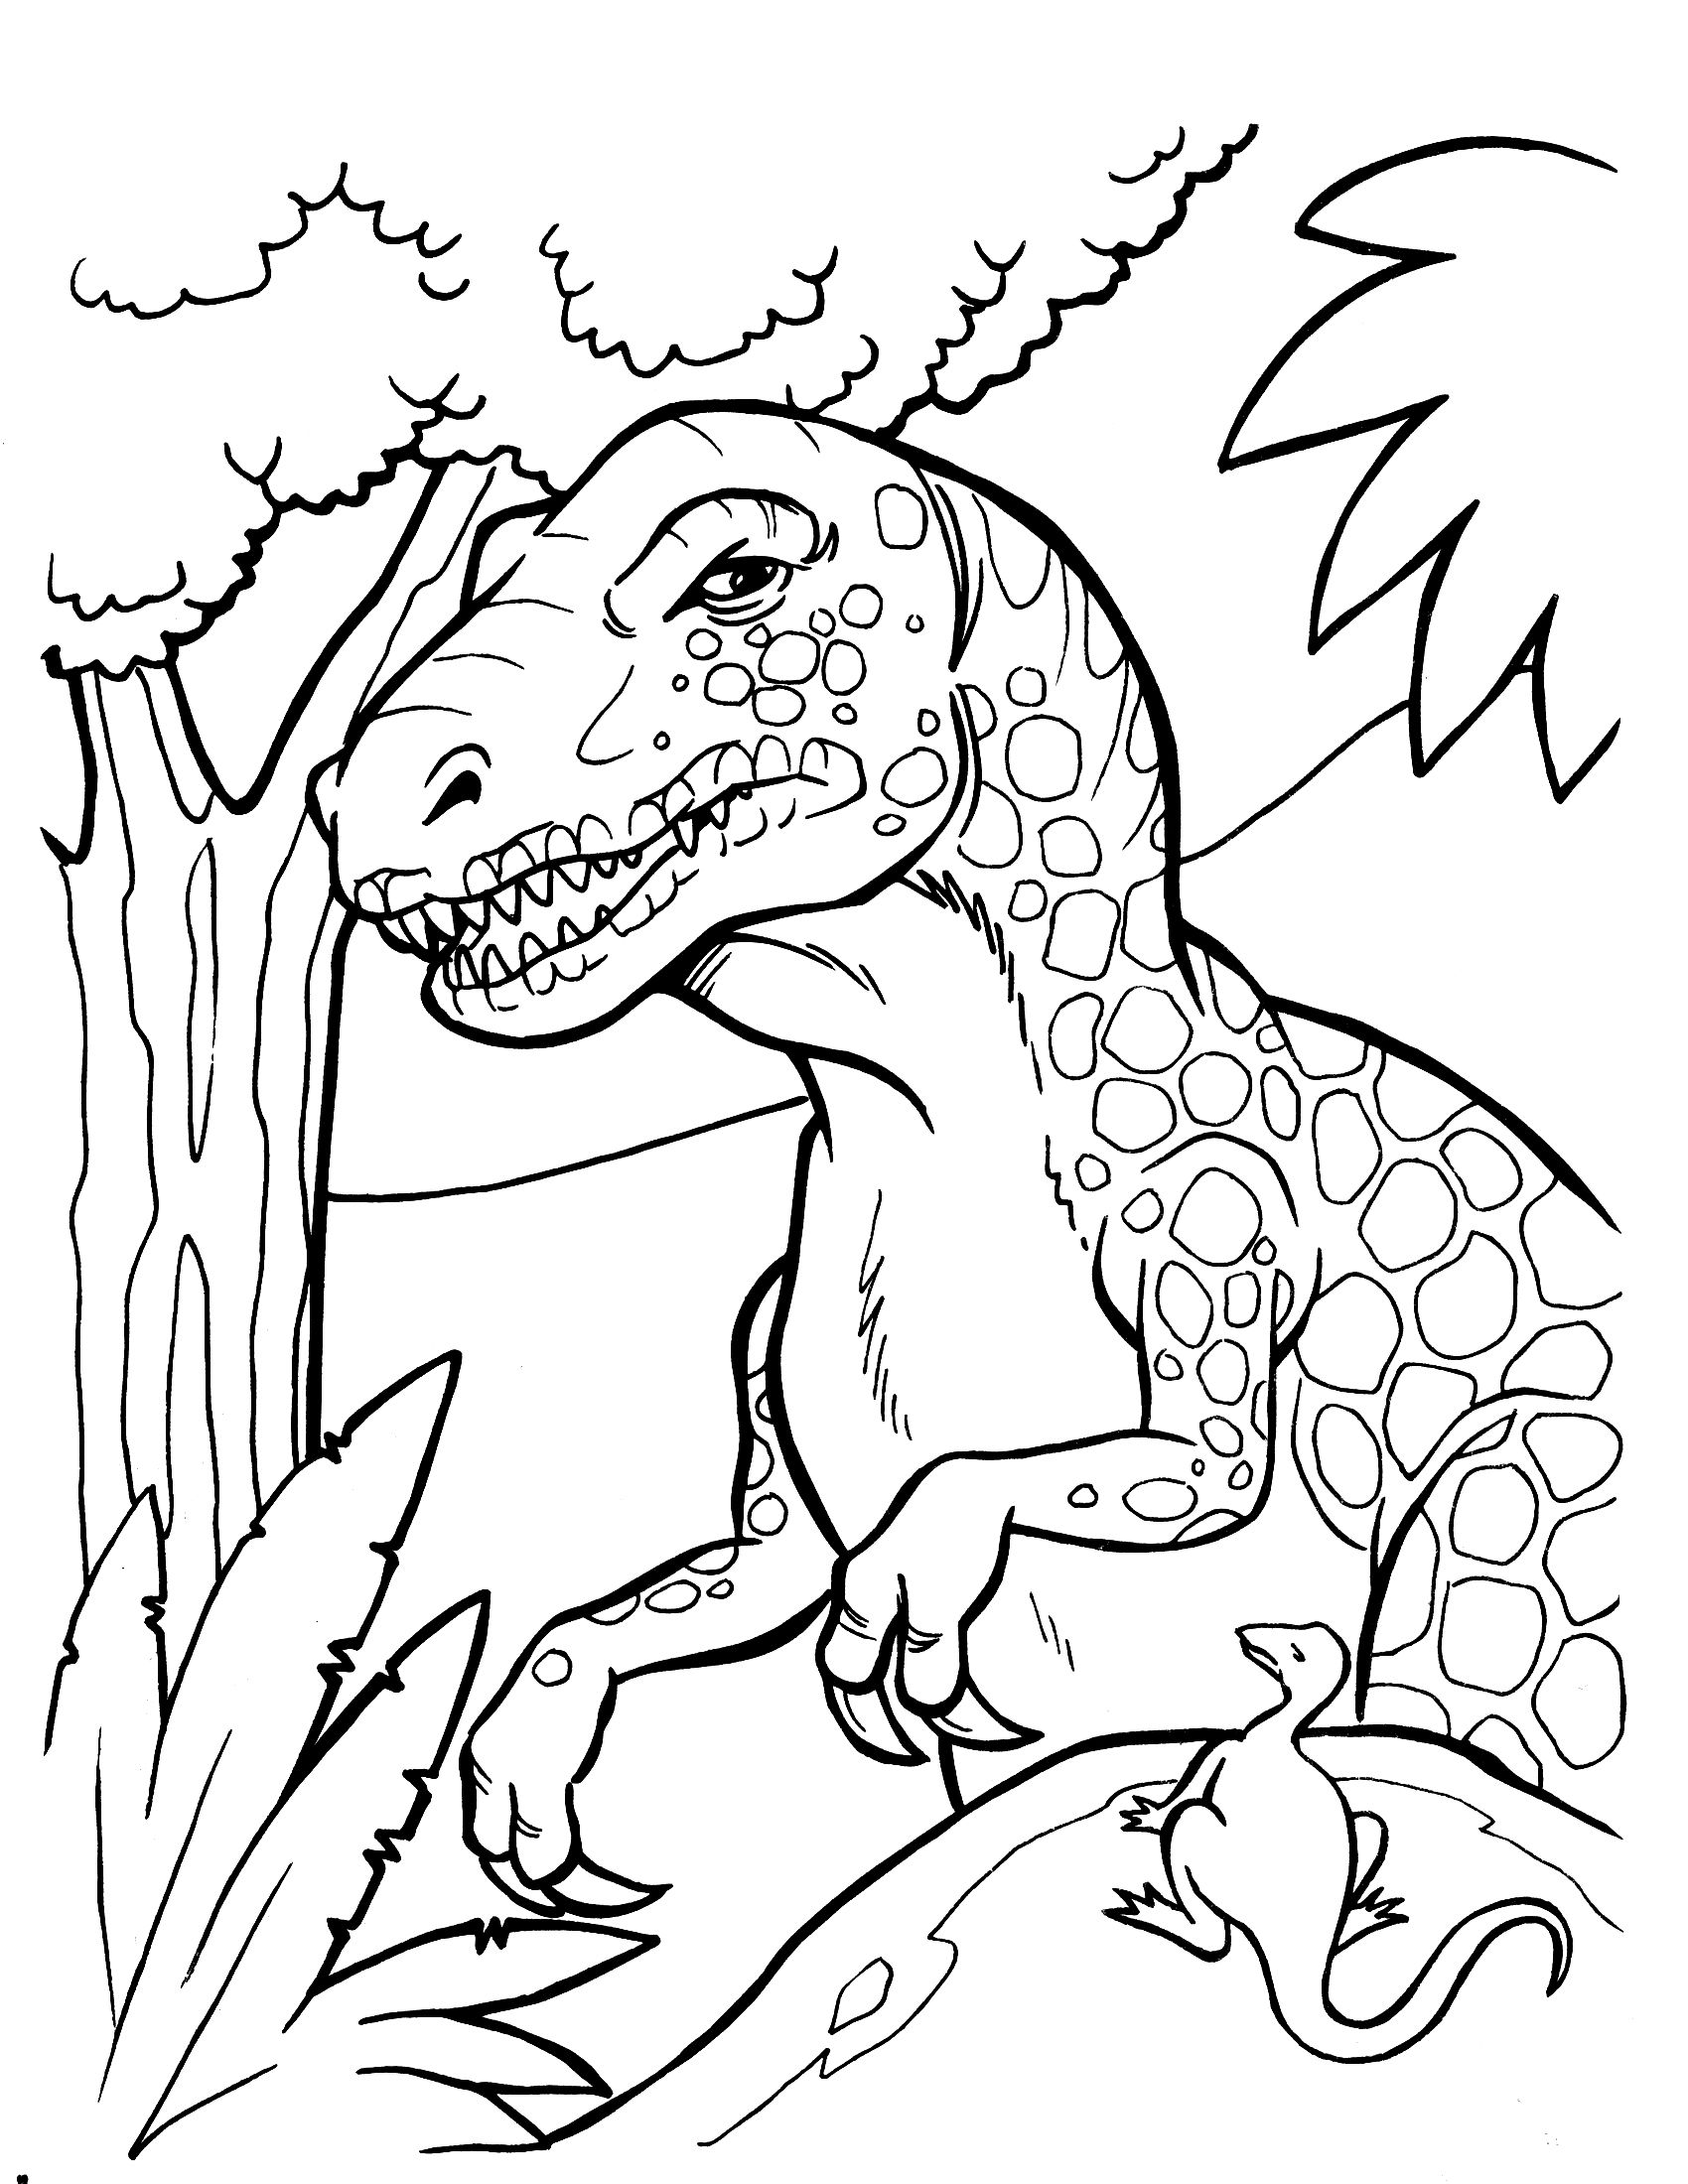 Free Printable Dinosaur Coloring Pages Clip and Color part two